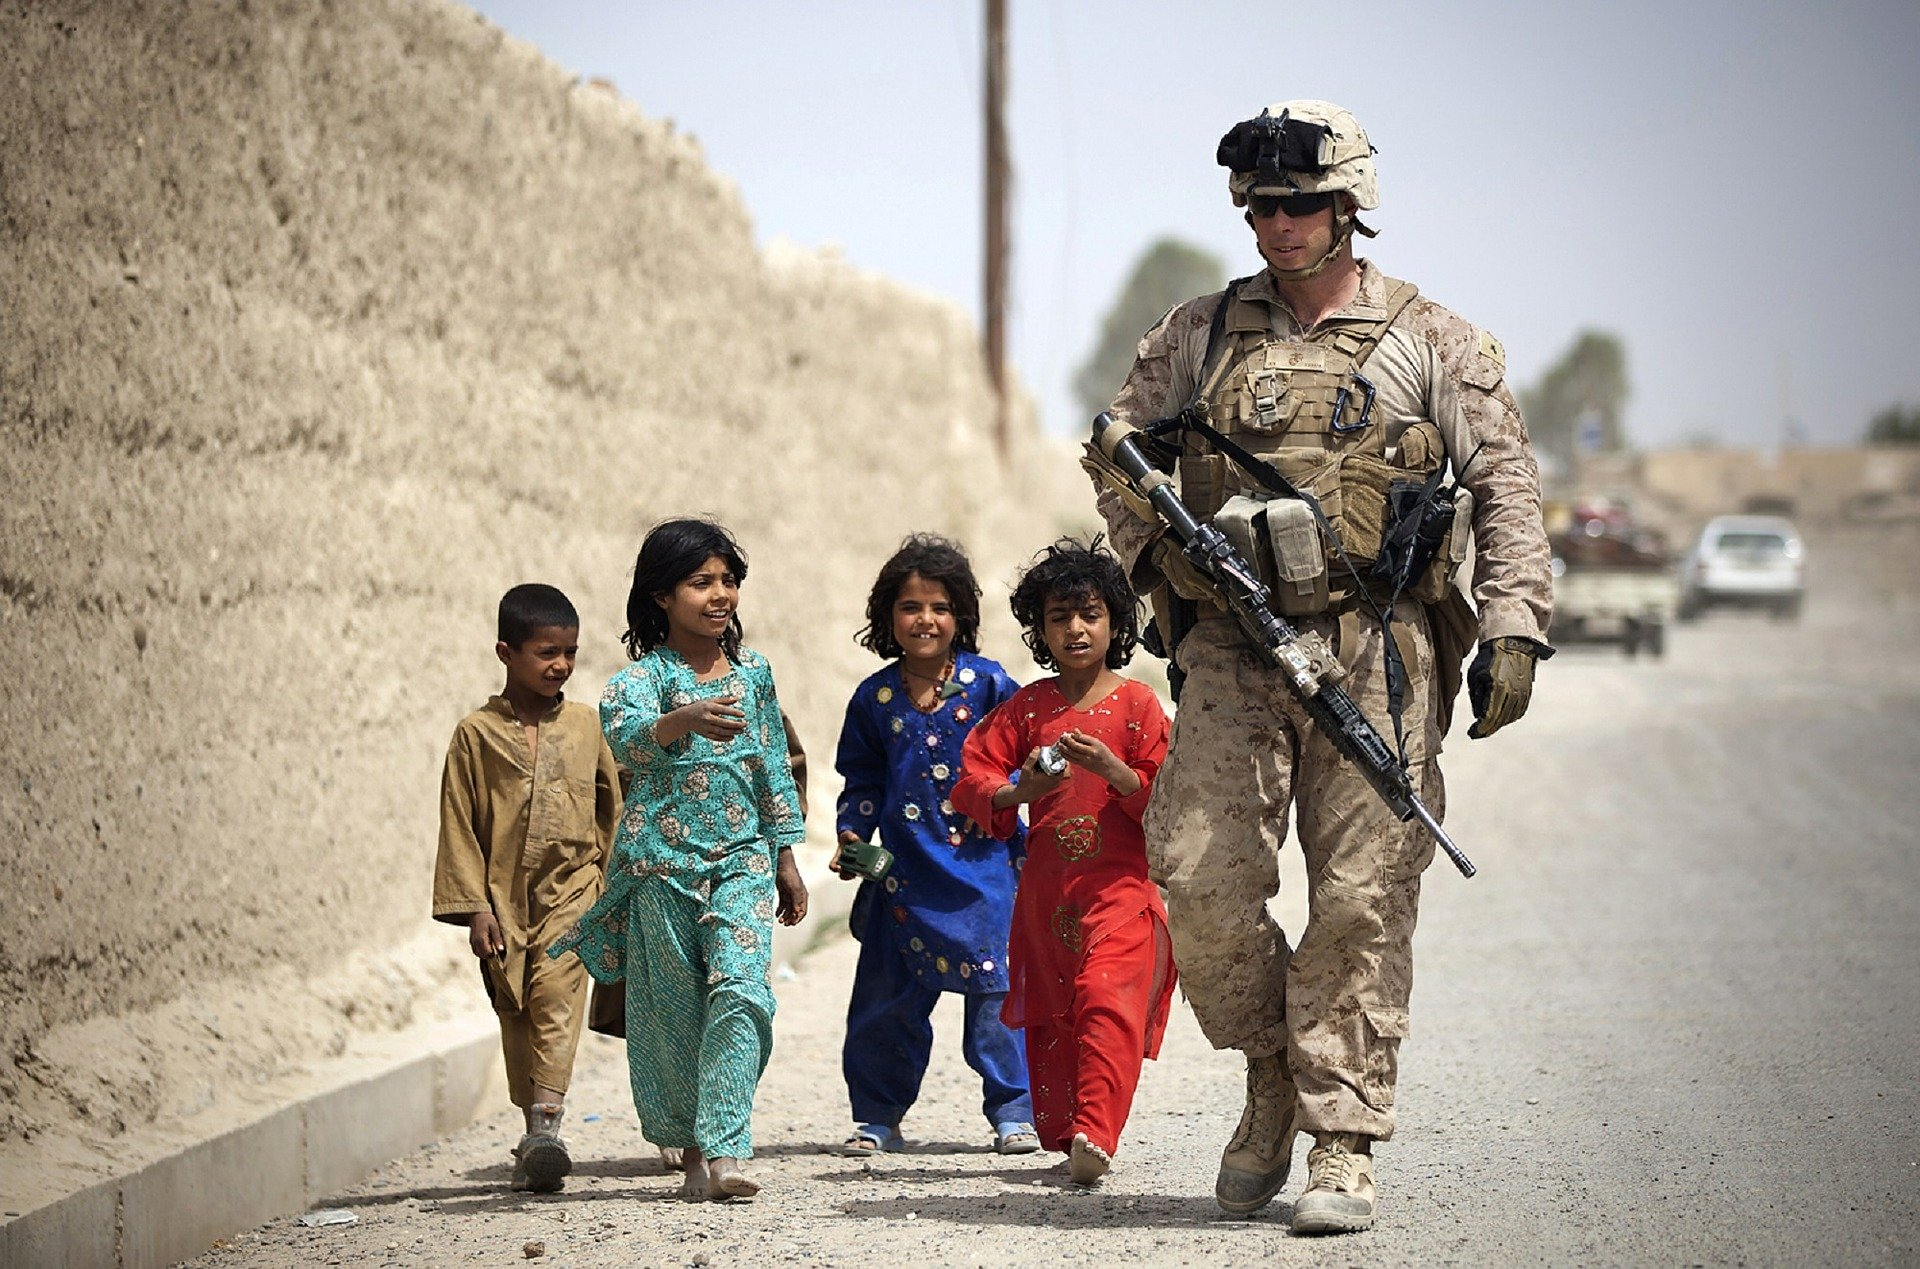 humanity, USA Soldier